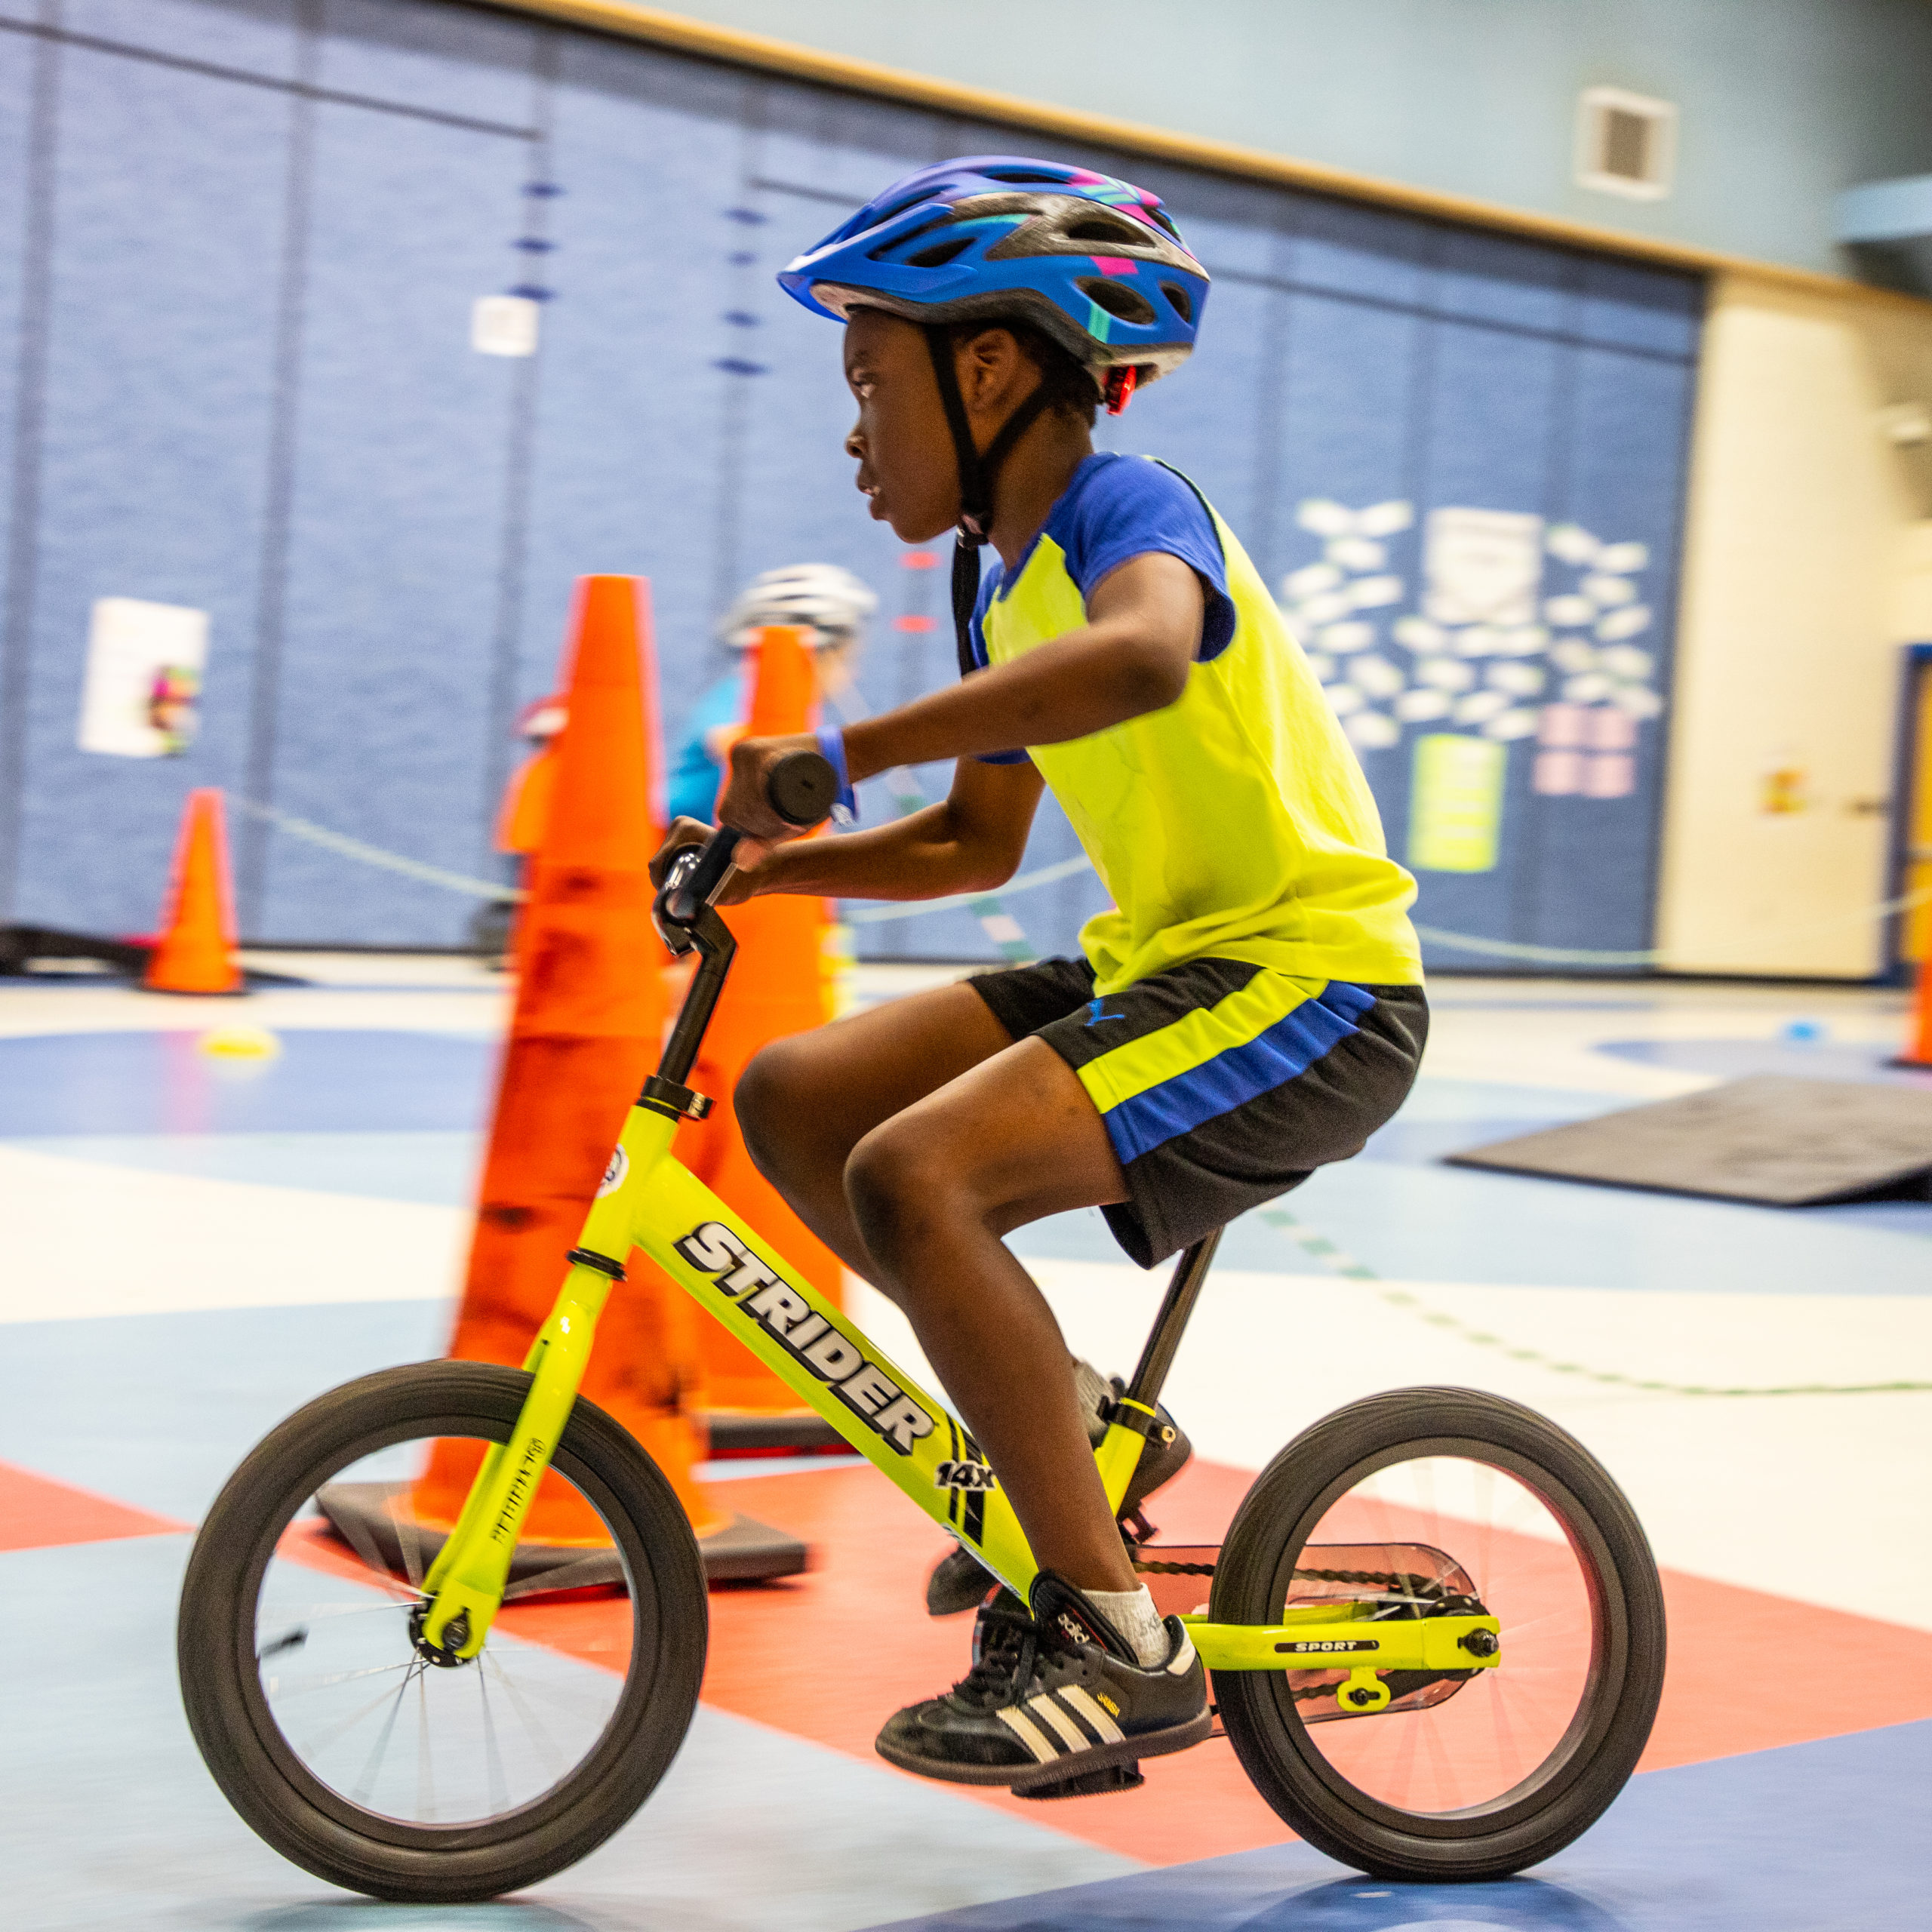 All Kids Bike Launches Online Donation Platform to Teach Every Child How to Ride a Bike